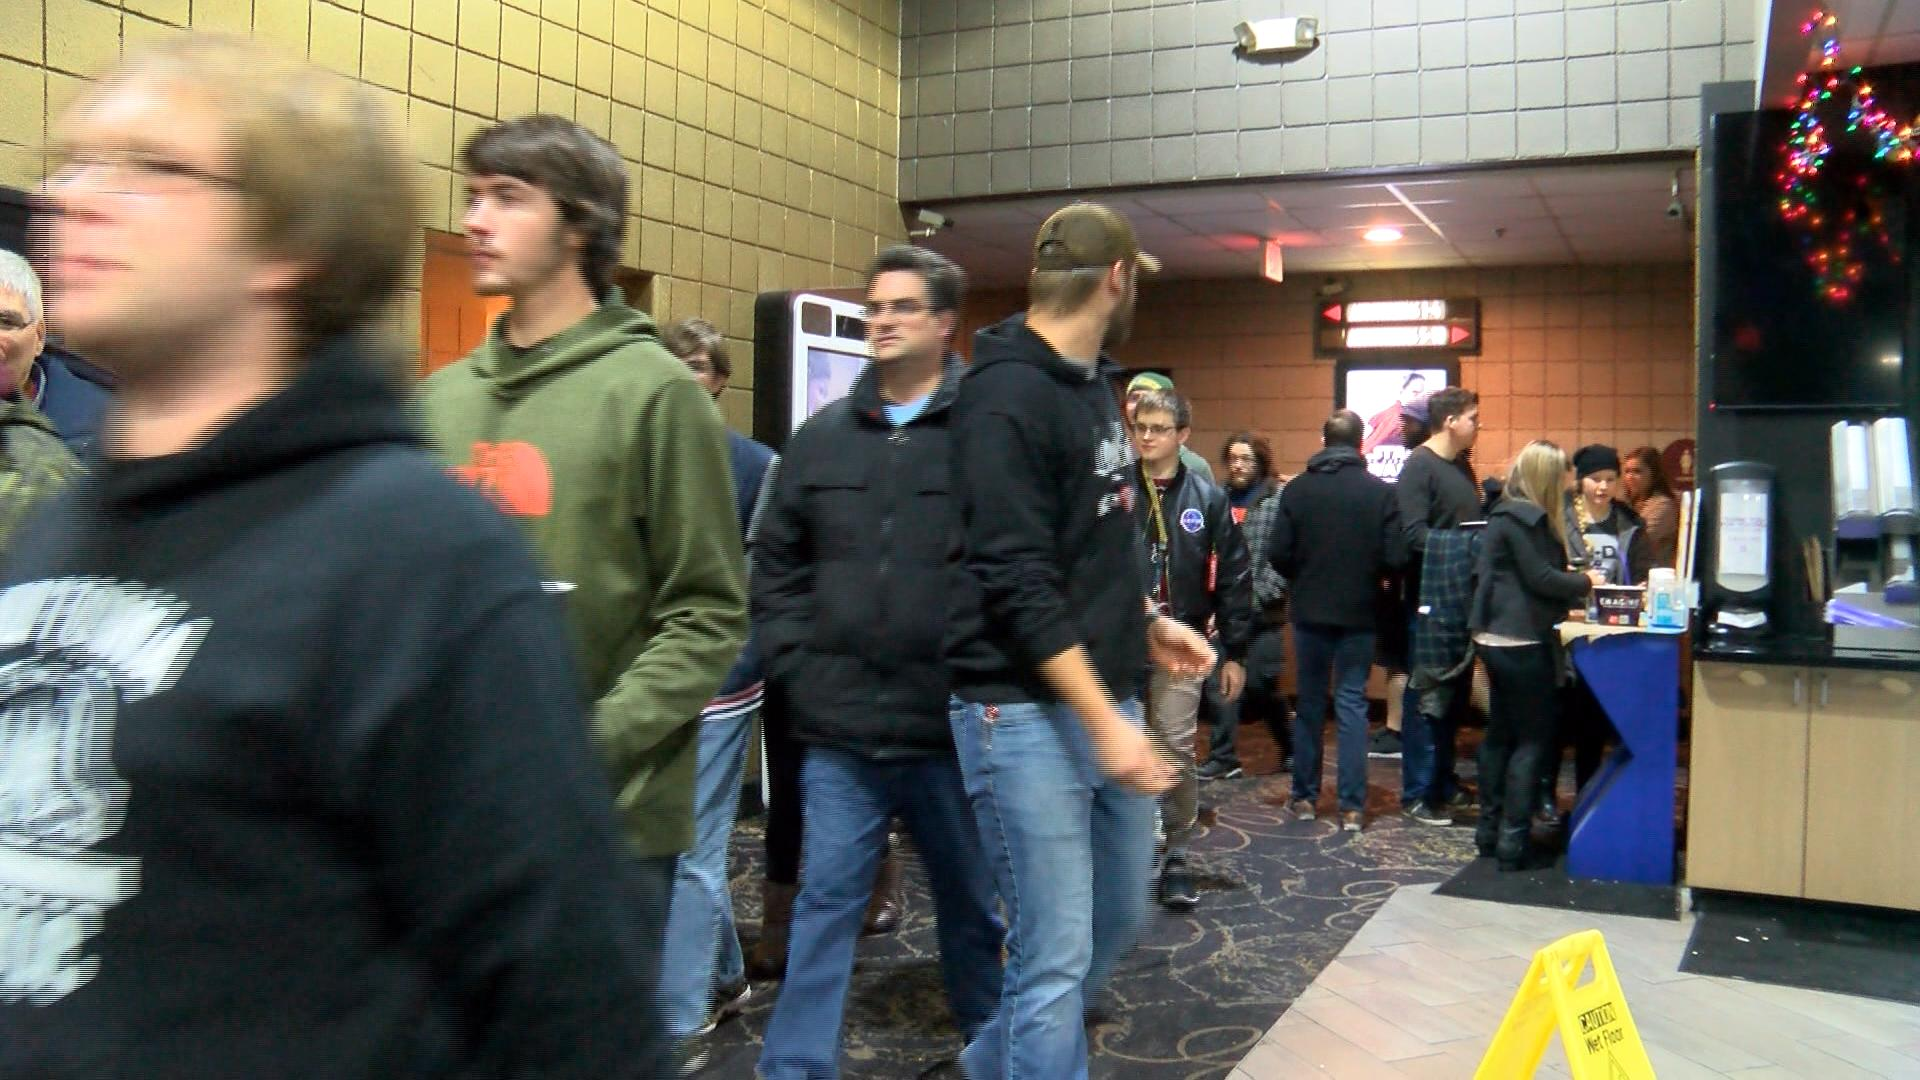 Star Wars fans had 'The Force' with them when they came out in force to see the latest installment of the intergalactic franchise. (Photos by Ian Wood WEYI/WSMH)